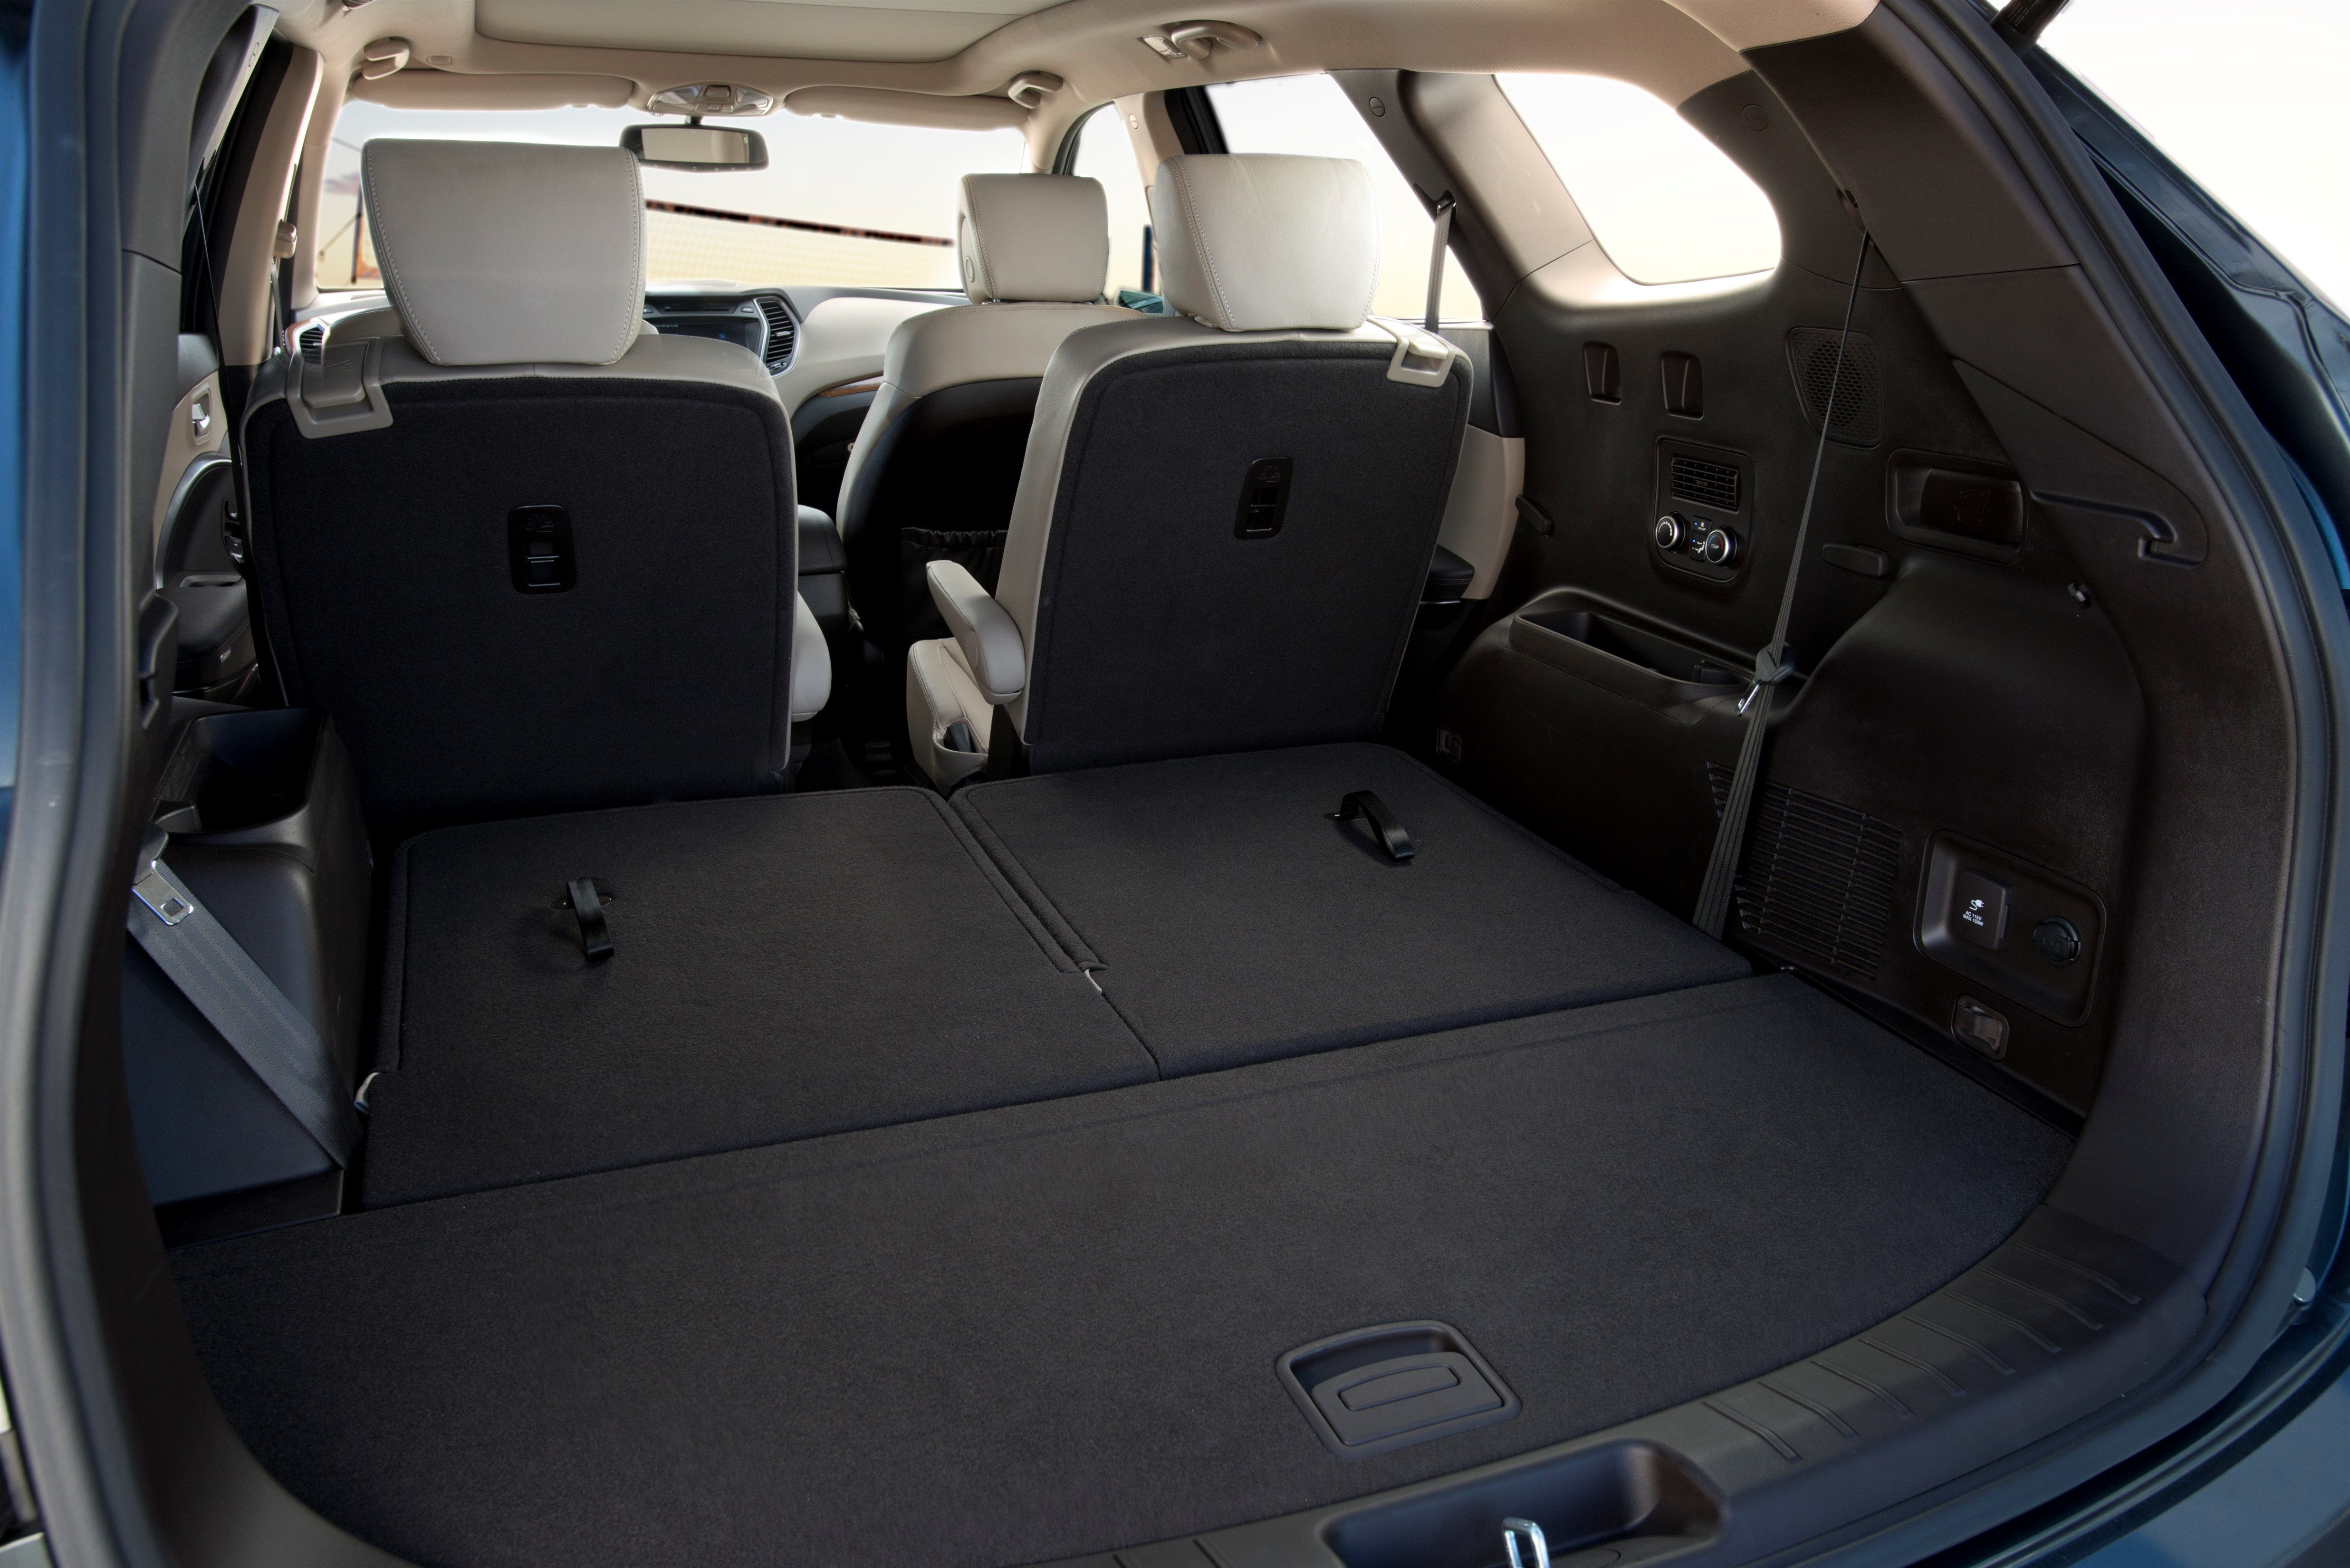 2014 Hyundai Santa Fe 3rd Row Seating Folded Down Shown With Technology Package Options 2014